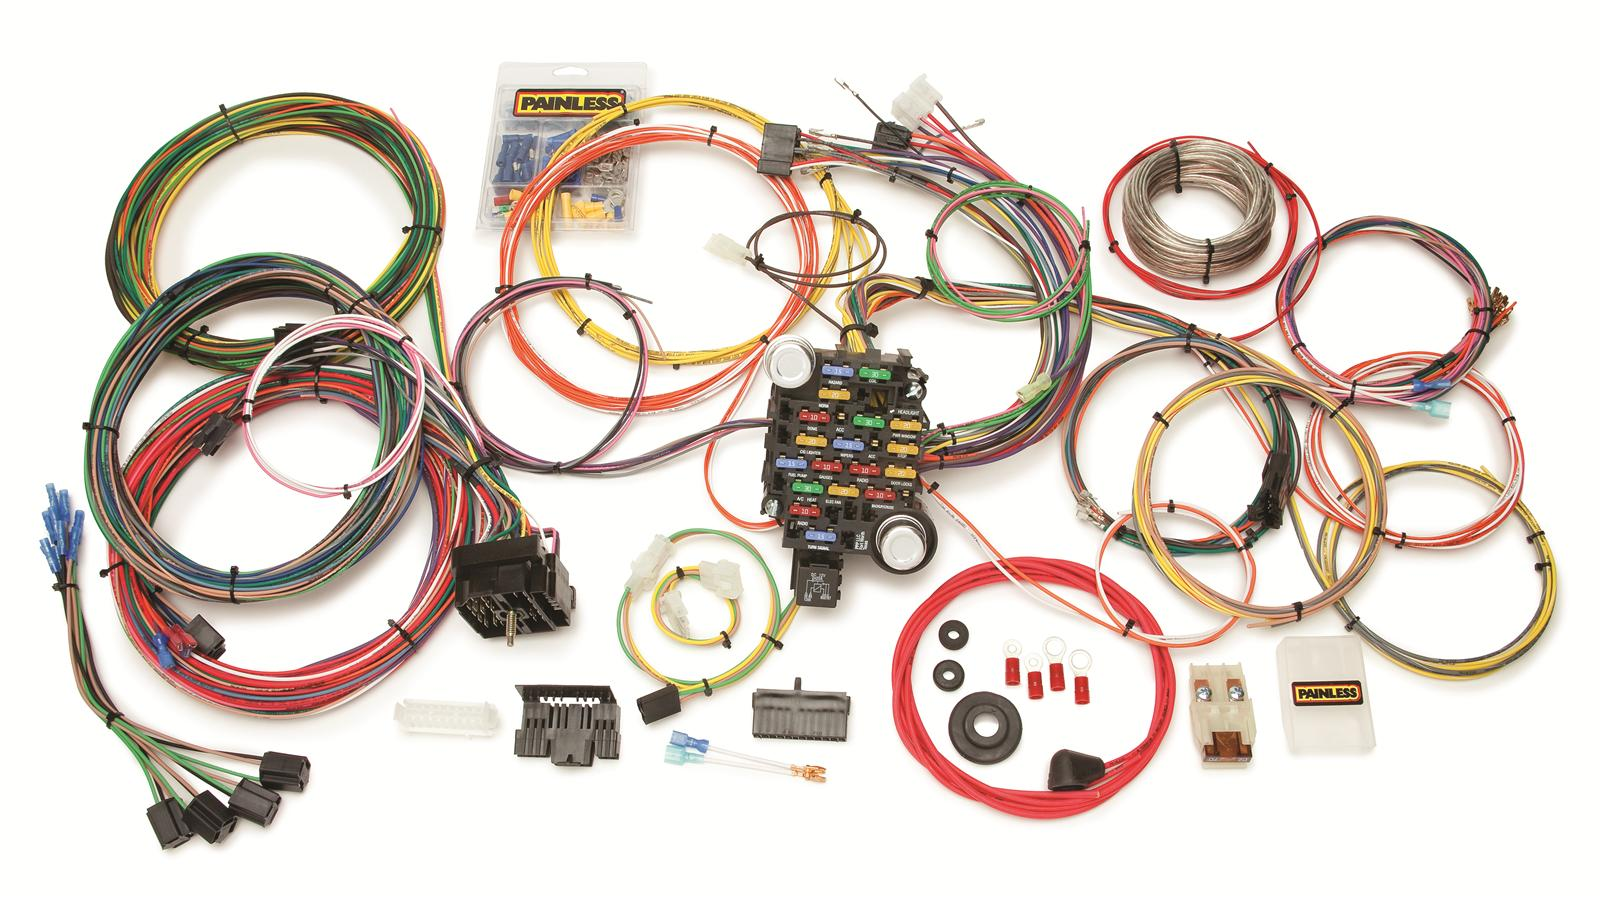 Painless Performance Gmc Chevy Truck Harnesses 10205 Free Shipping 85 Steering Column Wiring Diagram Ford On Orders Over 99 At Summit Racing